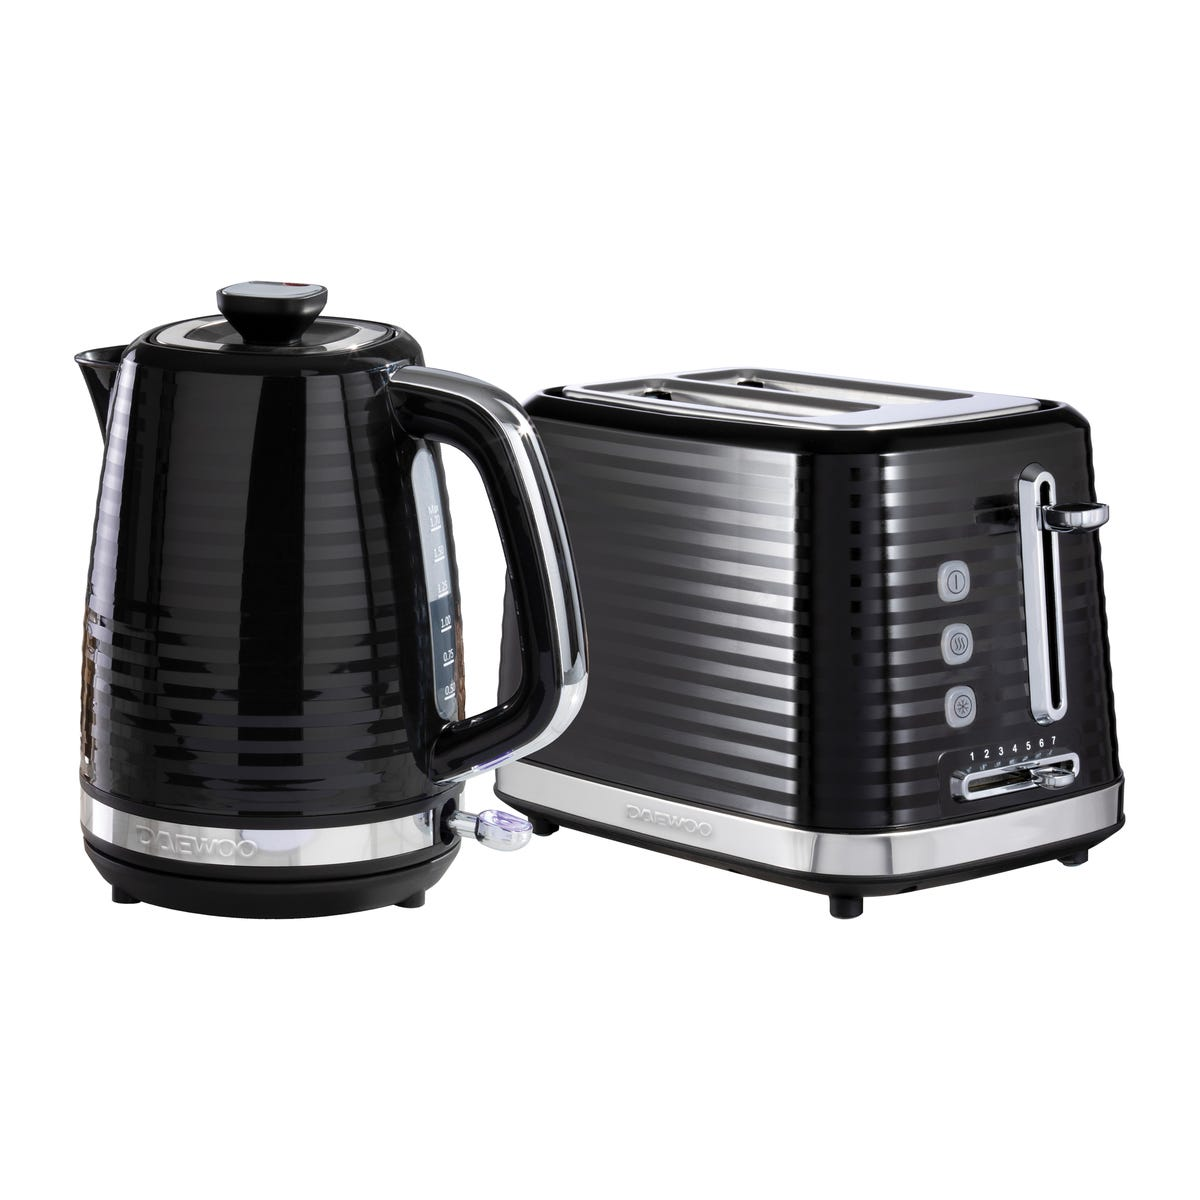 Daewoo SDA2368DS Hive 1.7L 3KW Textured Kettle and 2 Slice Toaster Set - Black